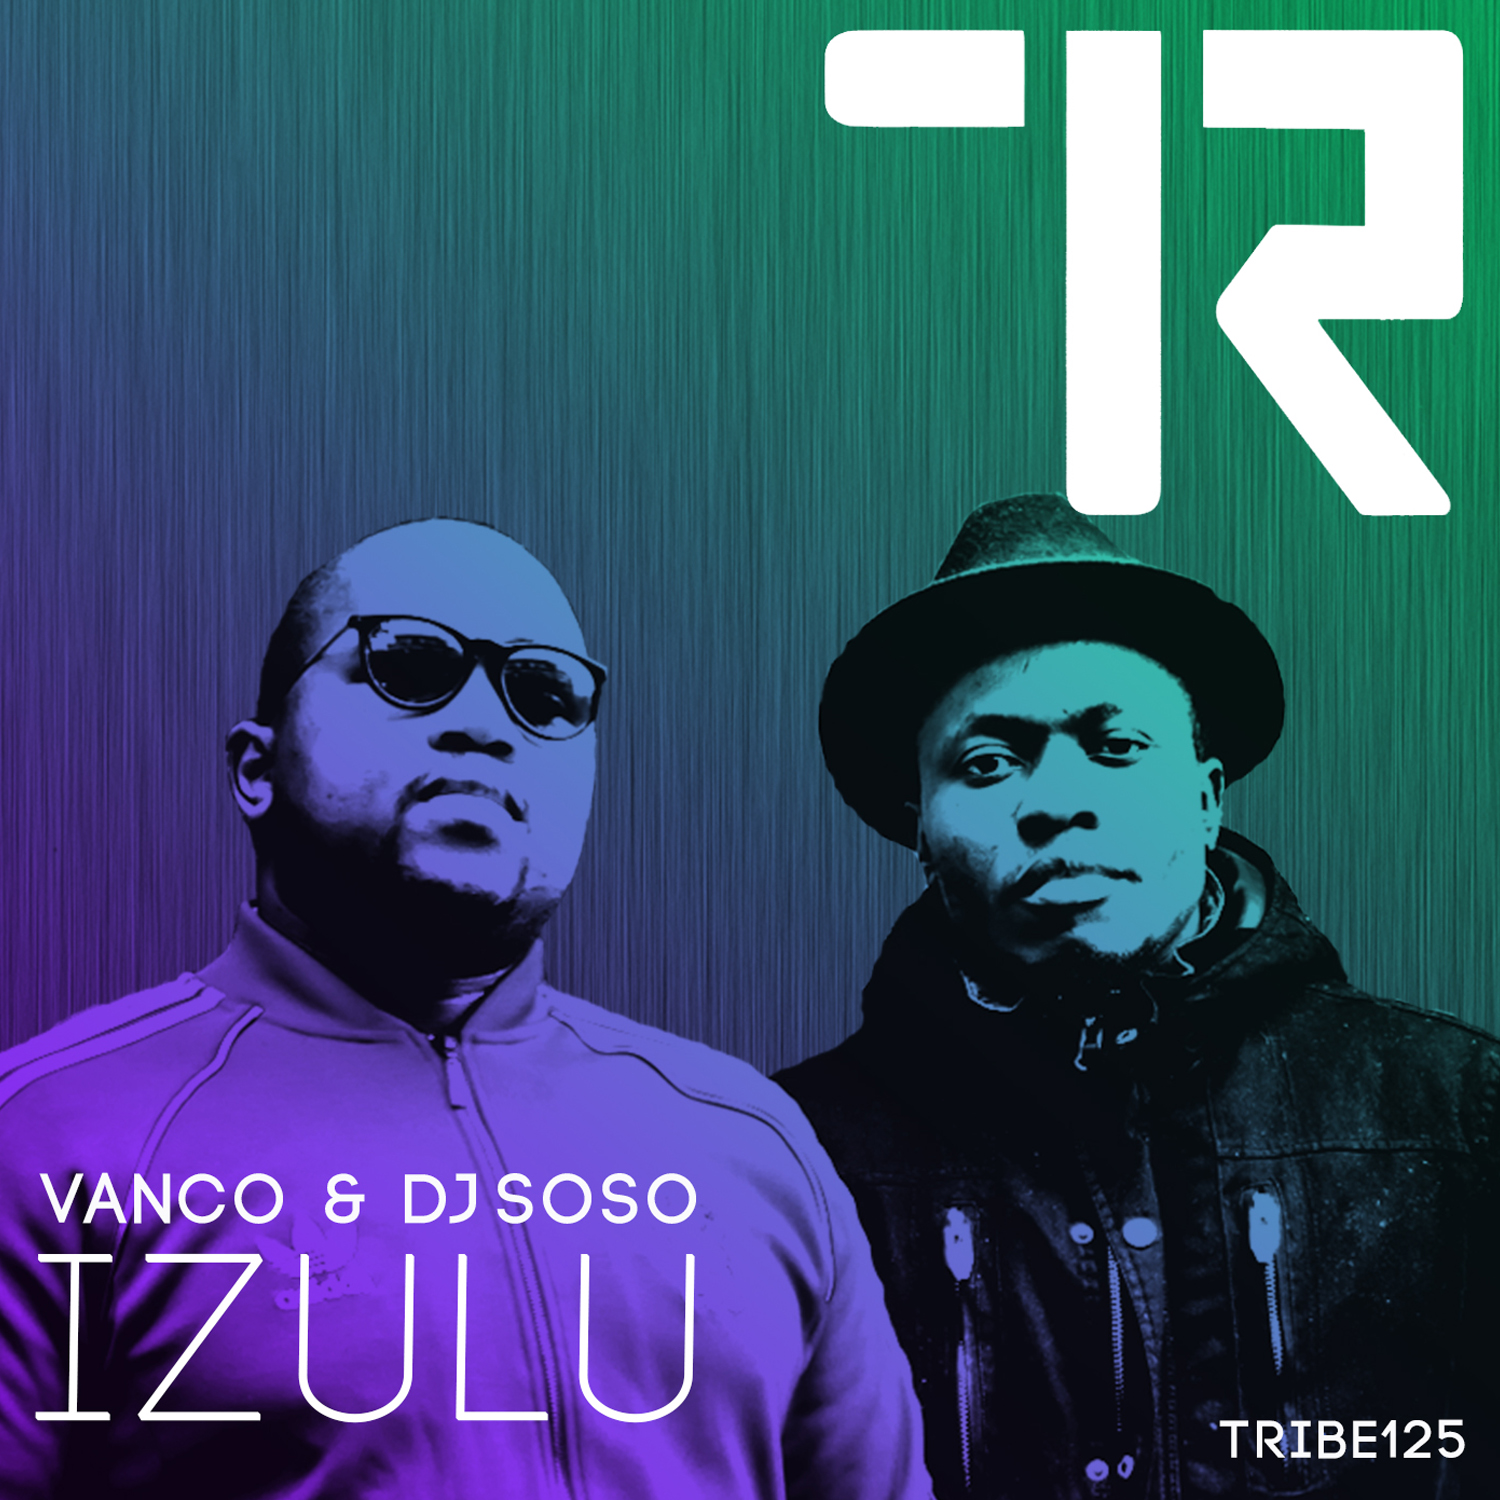 Izulu Dj Soso and Vanco